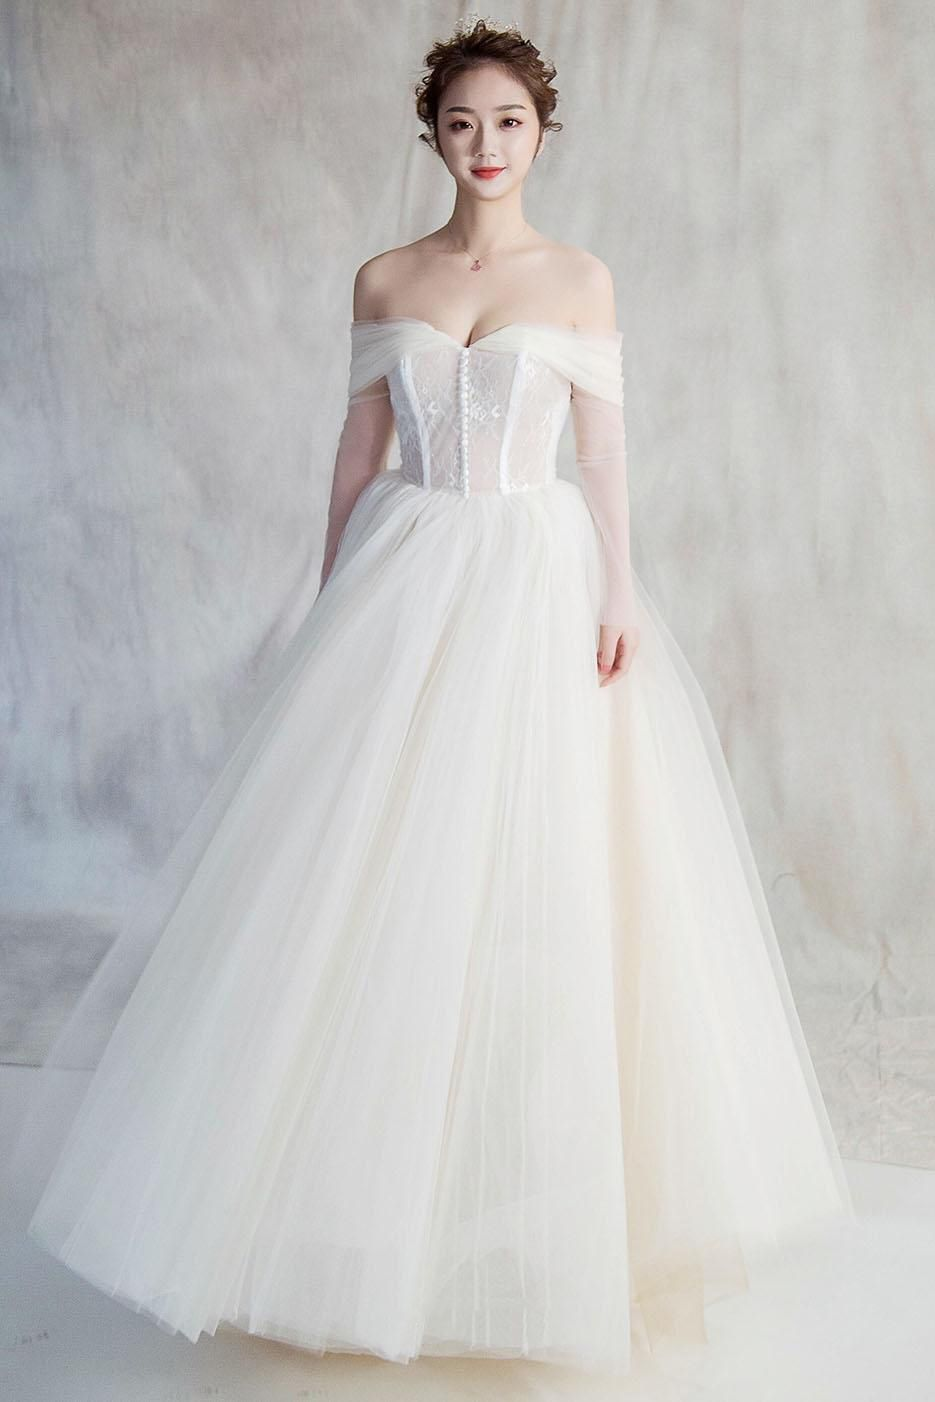 7d56a284466d This lovely long ivory tulle wedding dress featuring demure sheer long  sleeves, elegant off-the-shoulder detail, classic ball gown silhouette, ...